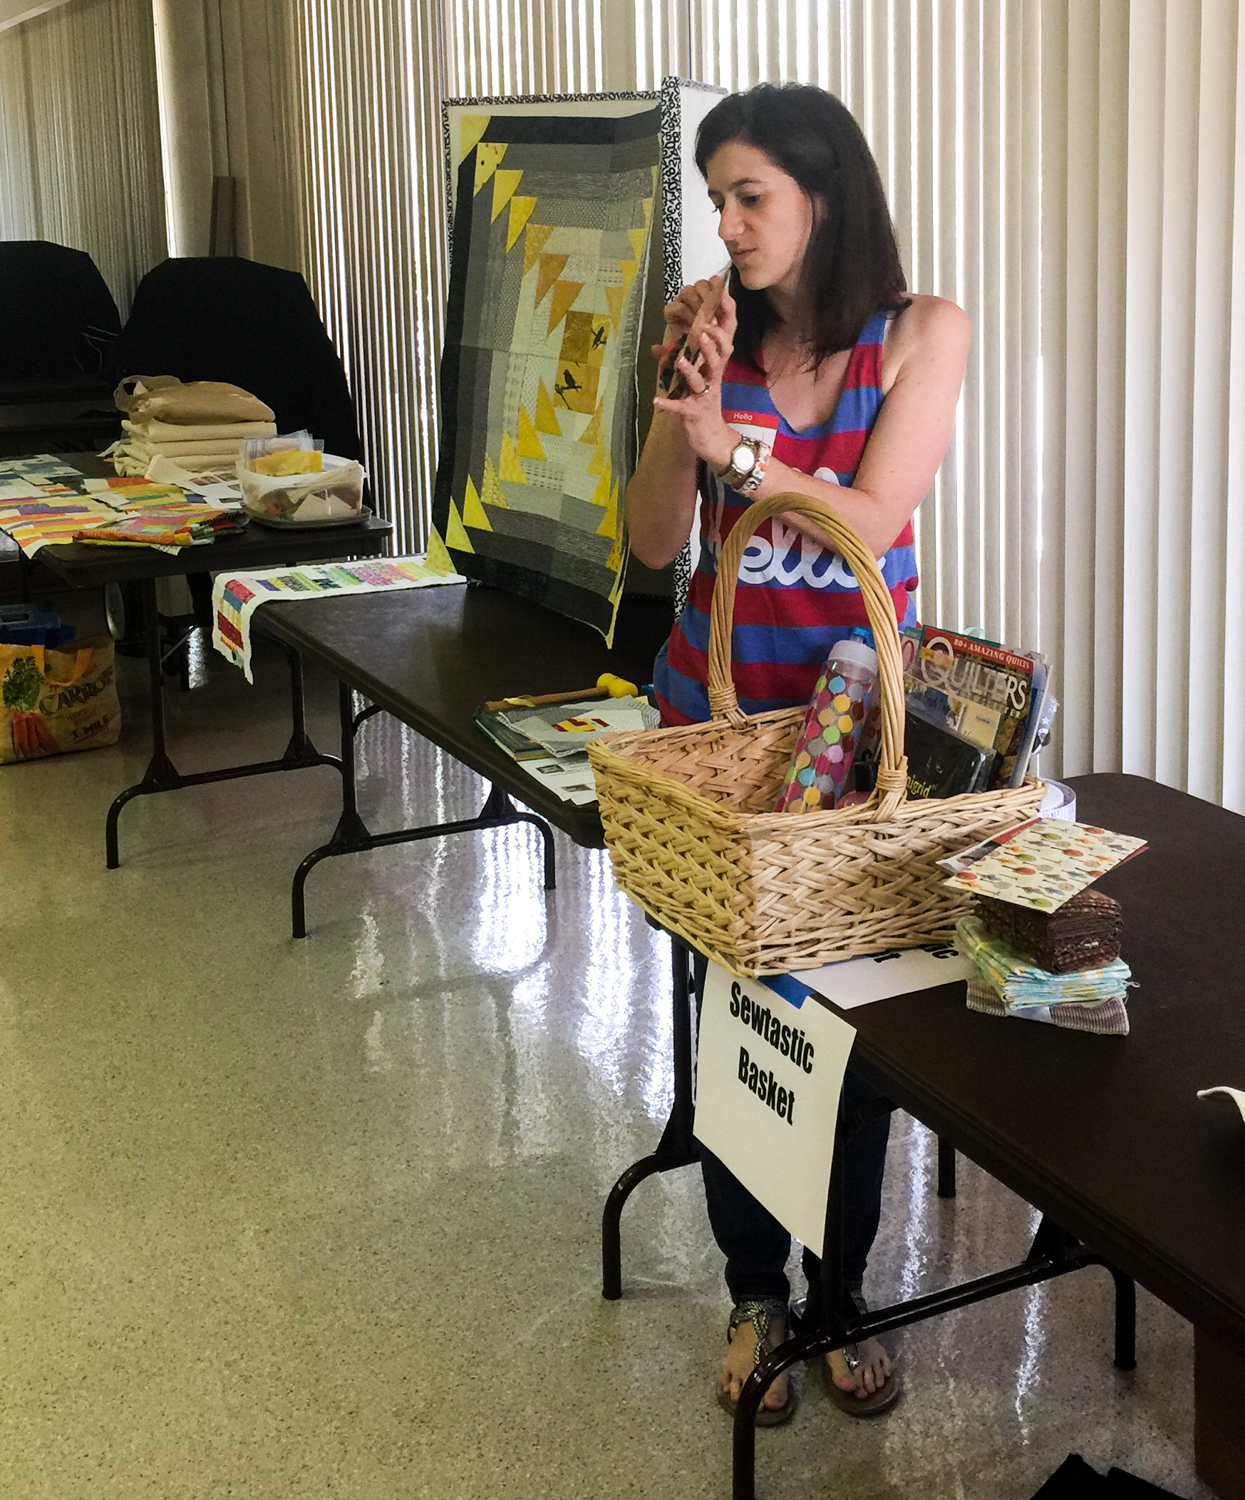 Sewtastic Basket coordinator Alyson Christianson shows us all the goodies.